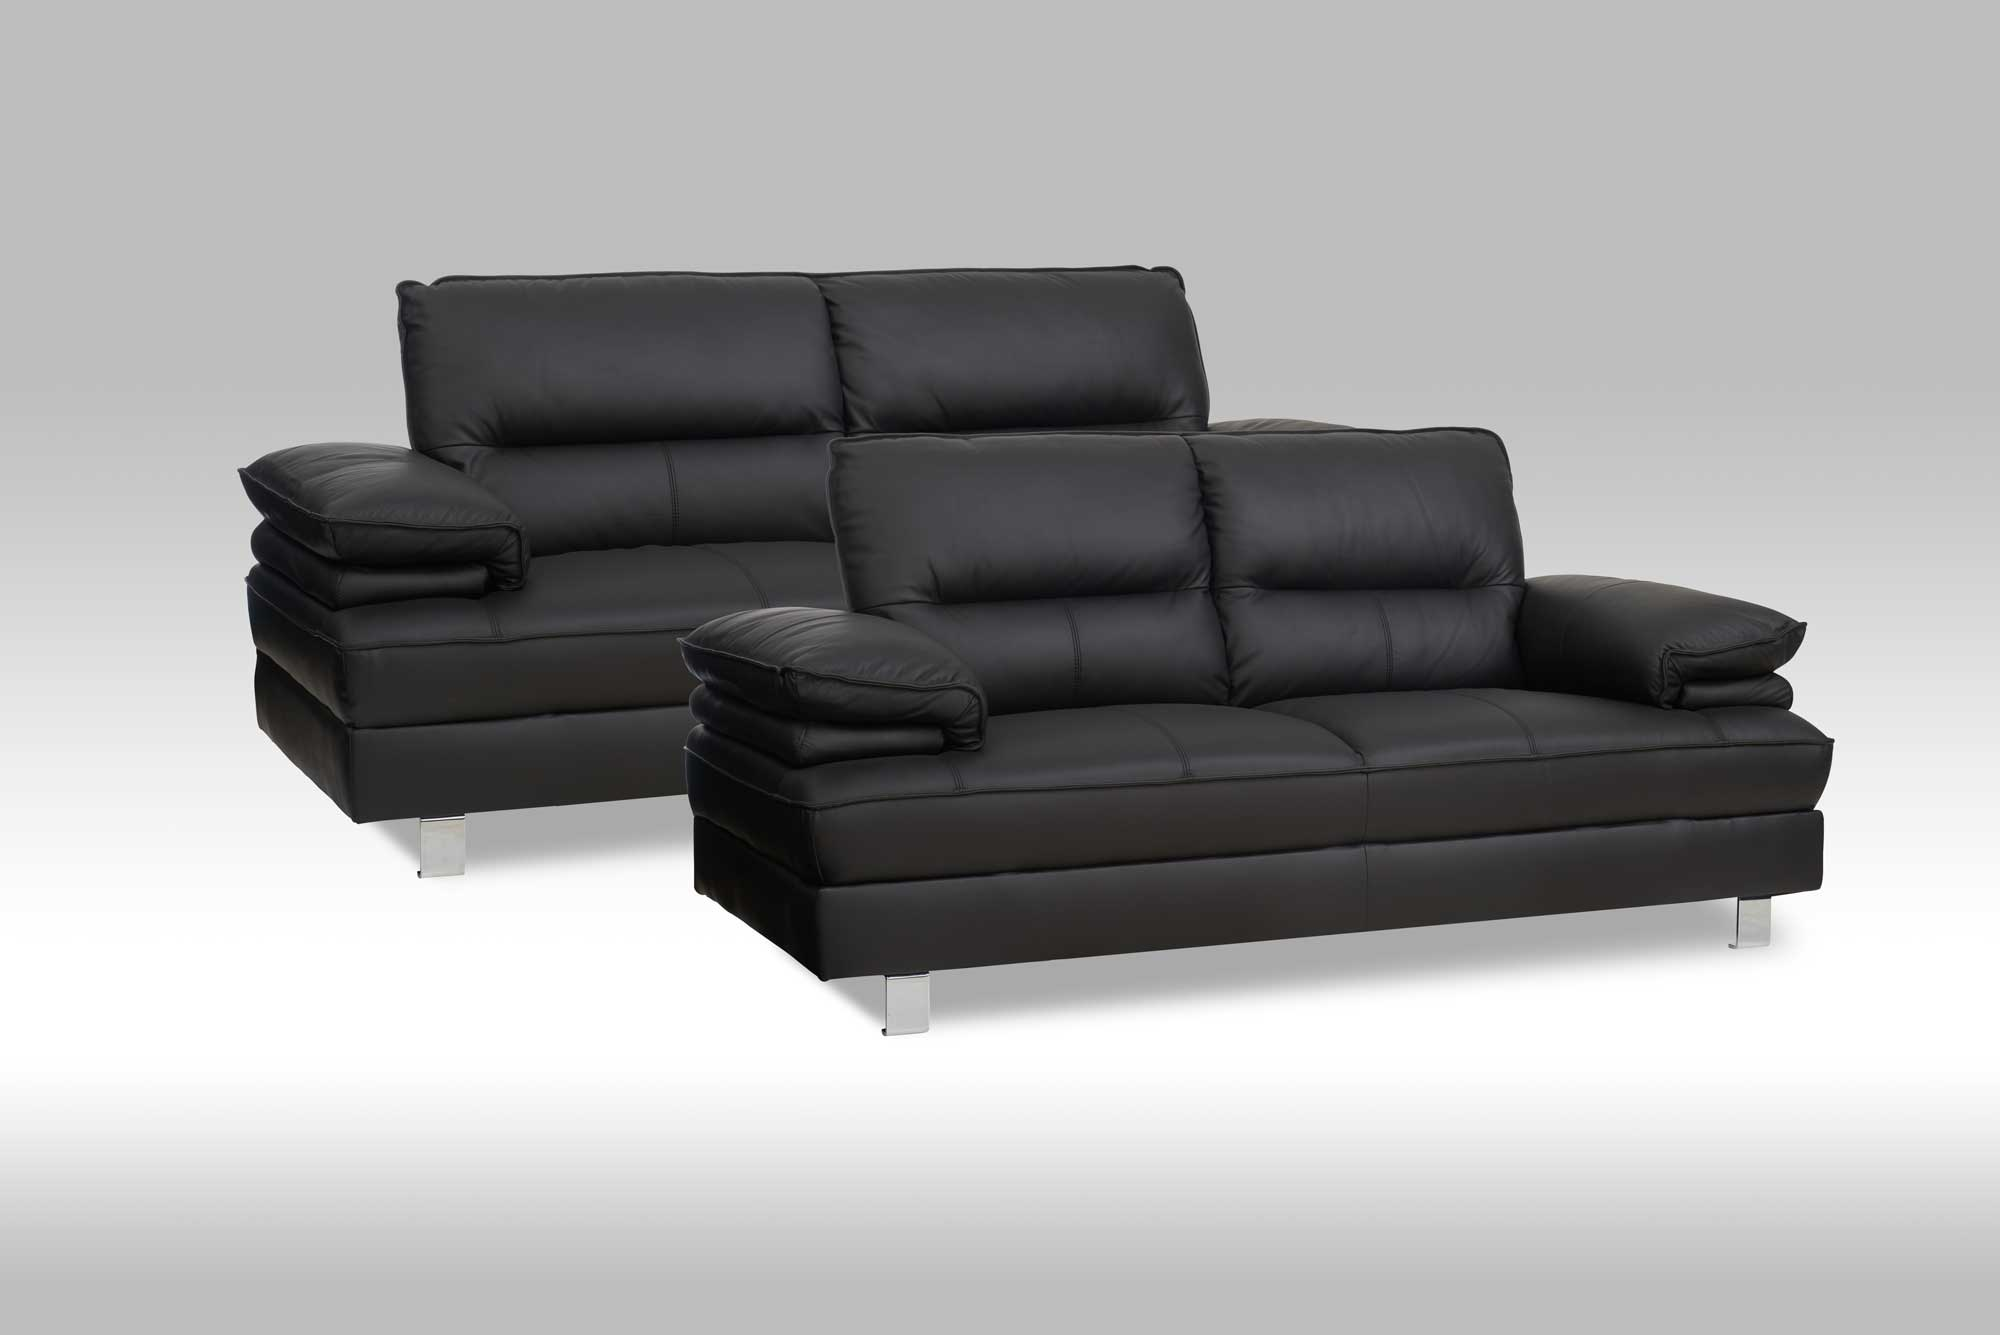 moderne susie sofast med en 2 3 pers sofa i sort lder. Black Bedroom Furniture Sets. Home Design Ideas